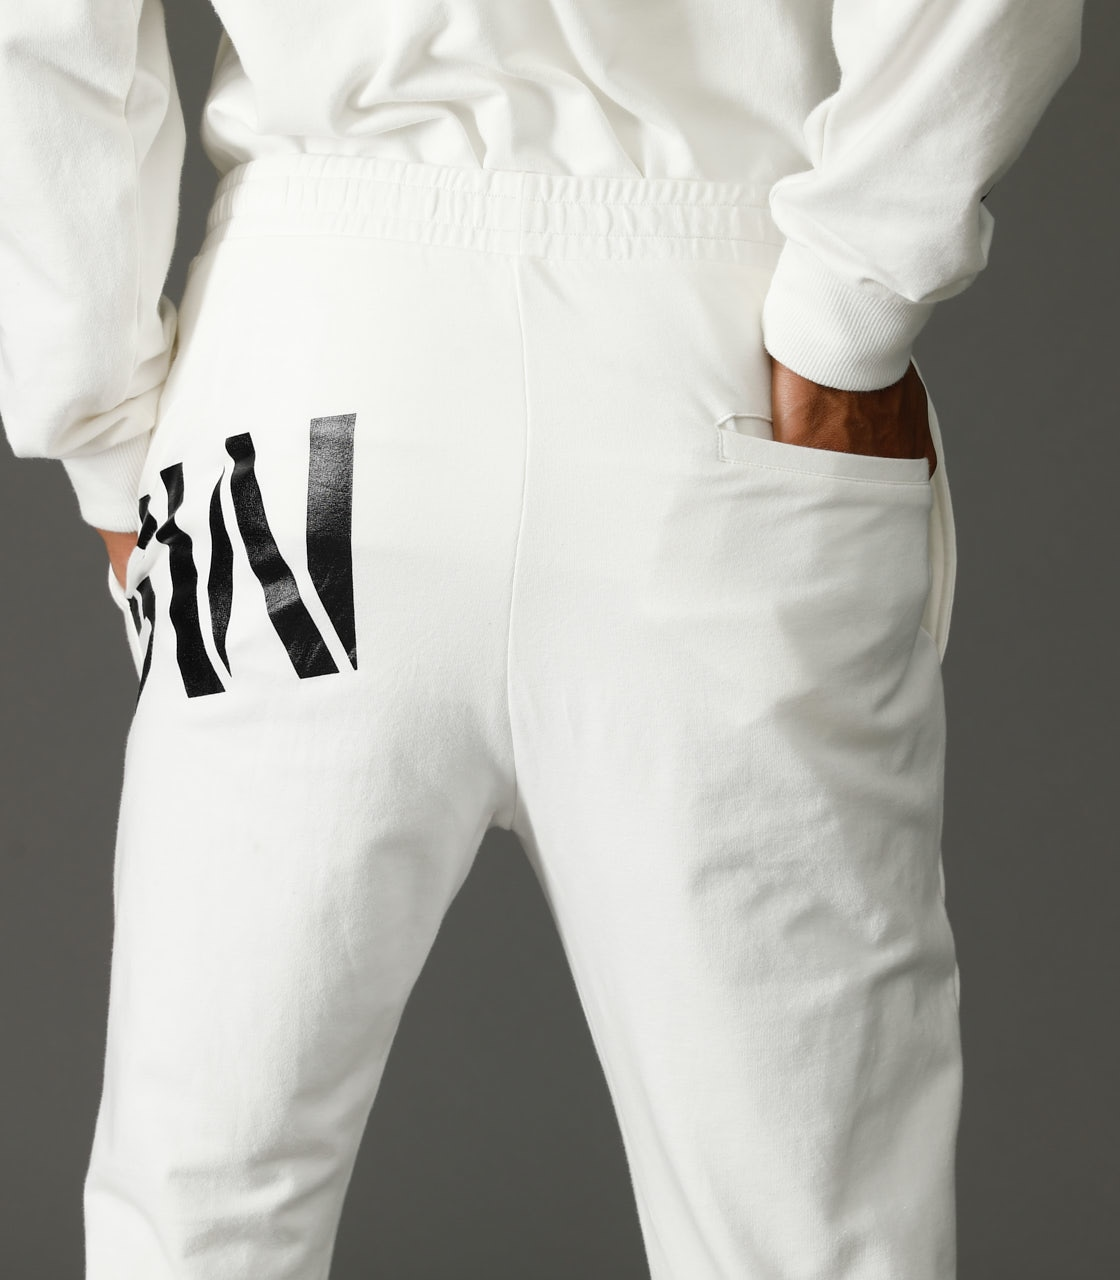 CLUB AZUL STRETCH PANTS 詳細画像 WHT 6